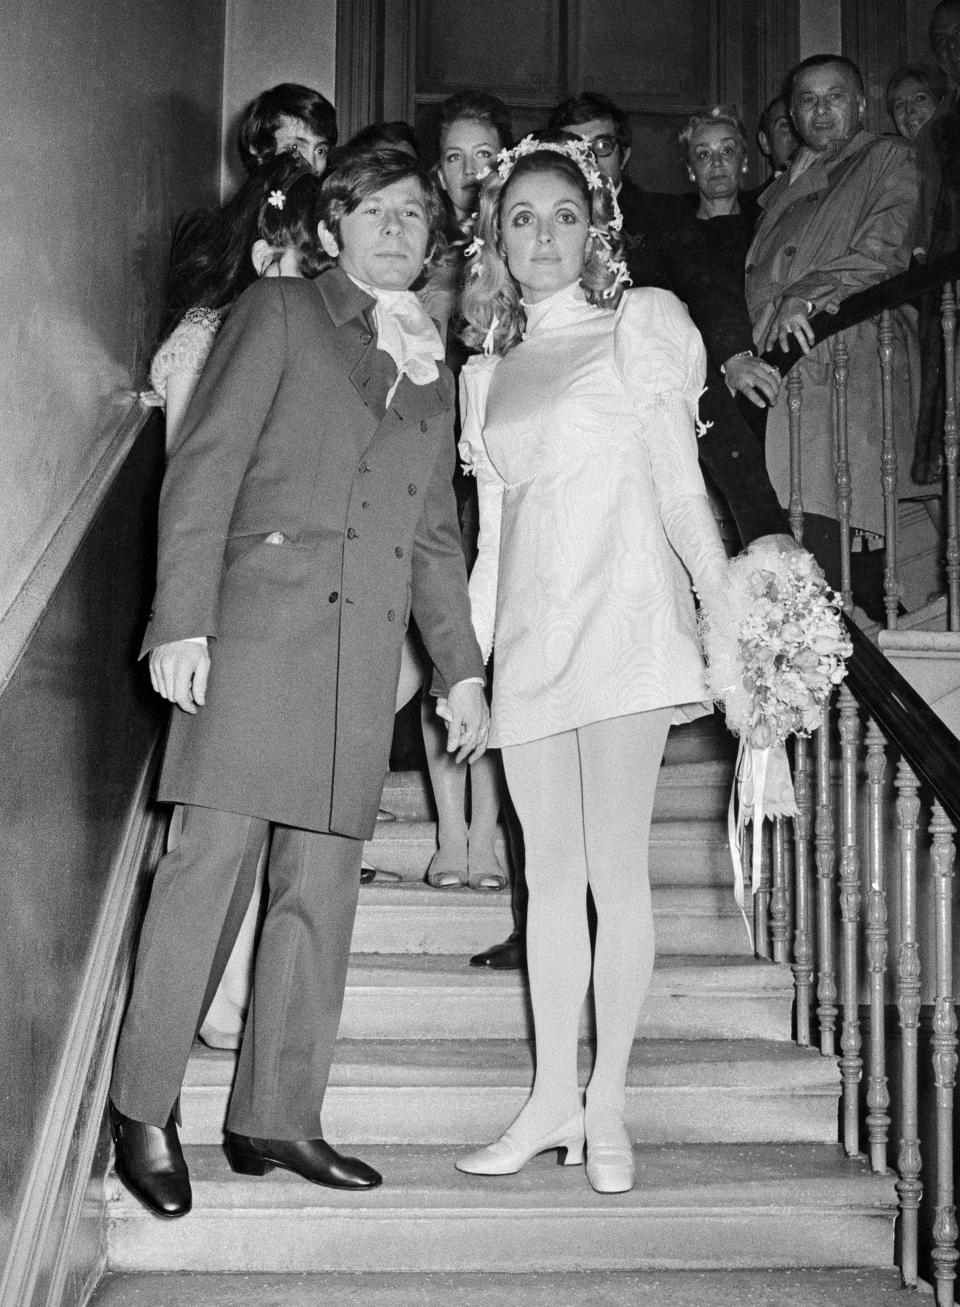 Sharon Tate y Roman Polanski sellaron su amor el 20 de enero de 1968. La estadounidense estaba radiante con este minivestido de seda con mangas farol de la firma Alba. (Foto: David Housden and Harry Fox / Getty Images)